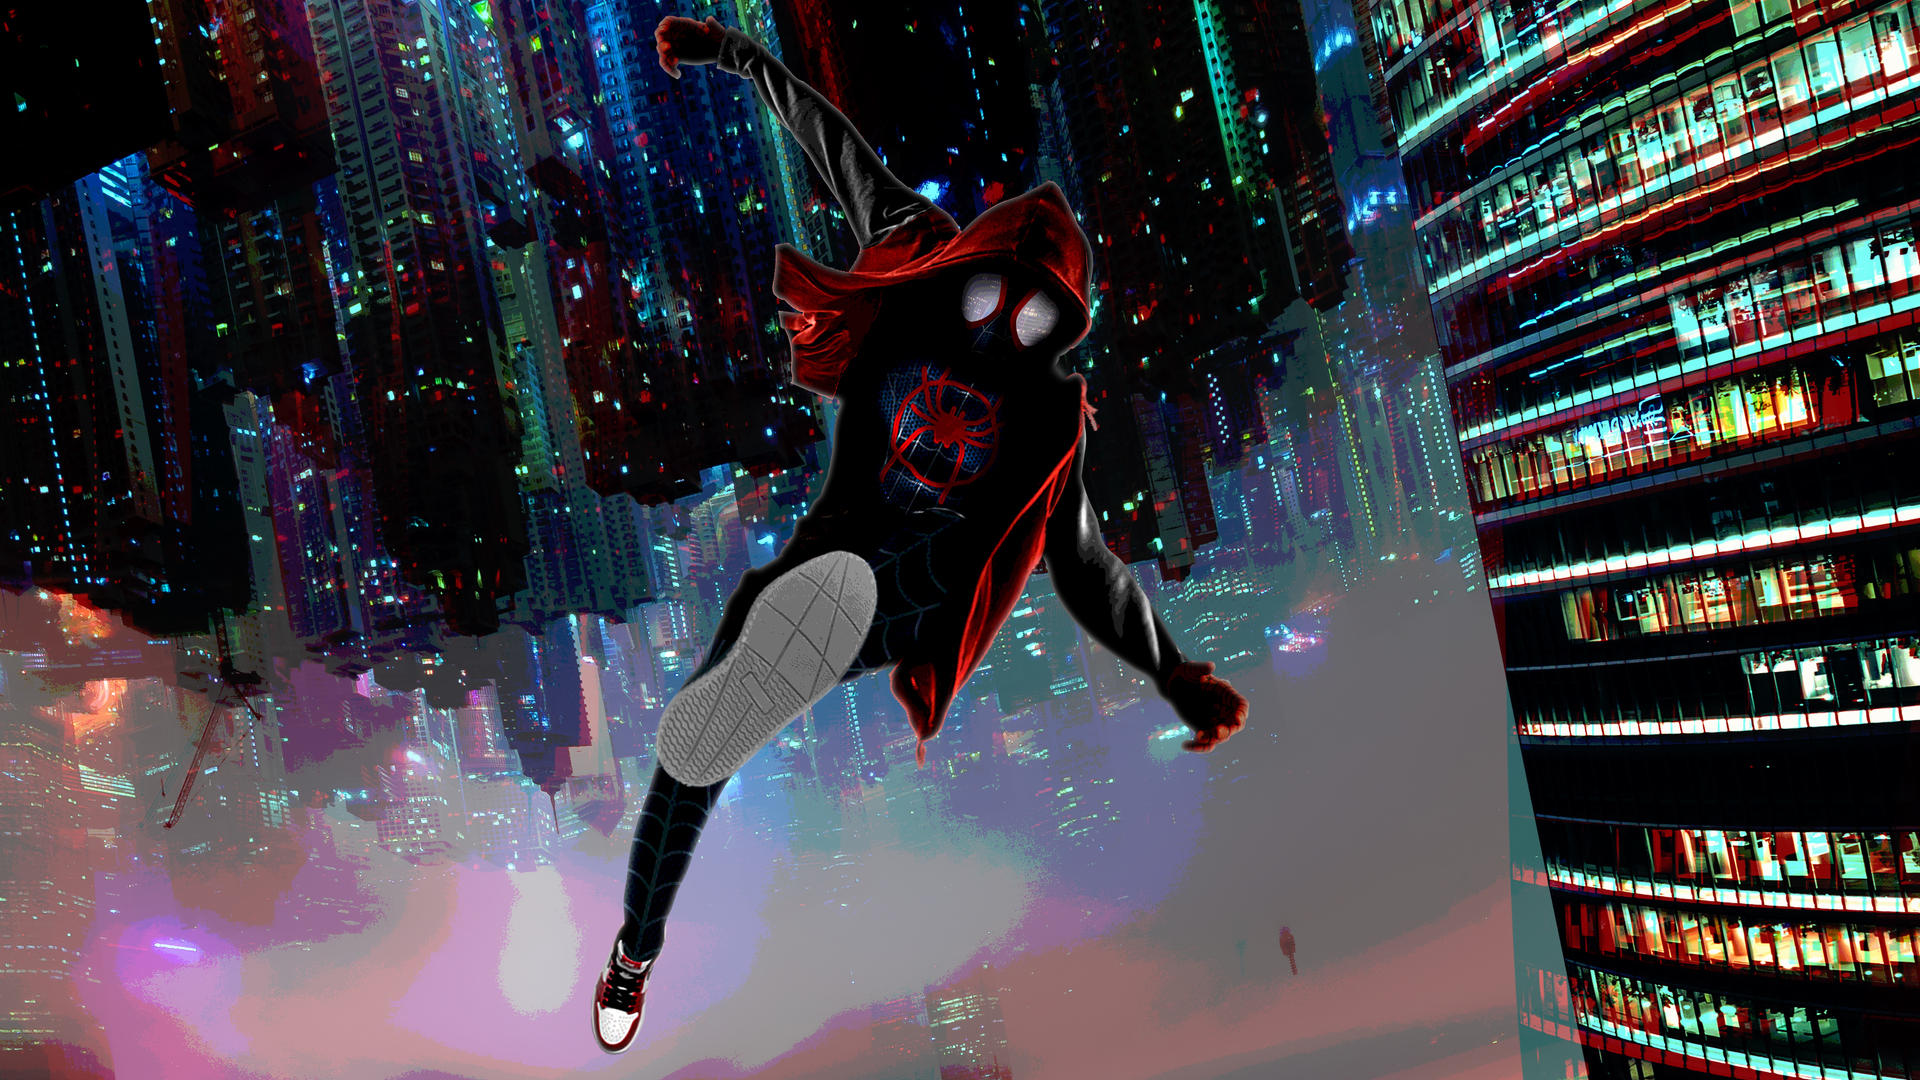 1920x1080 Spiderman Miles Morales Arts 4k Laptop Full Hd 1080p Hd